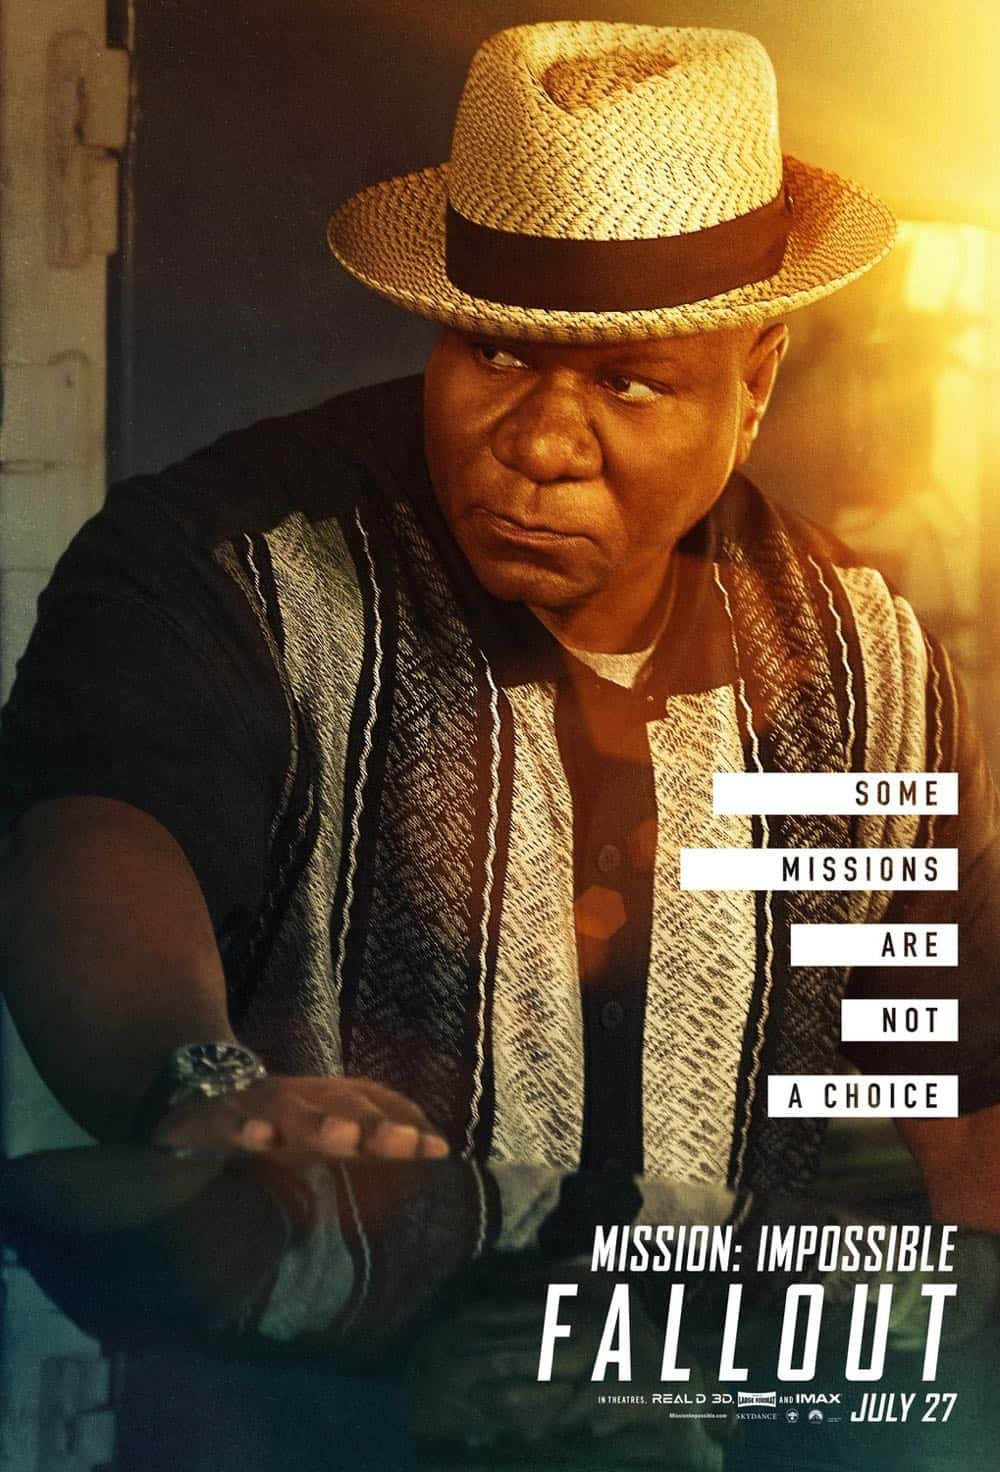 Mission Impossible Fallout Character Movie Poster Ving Rhames